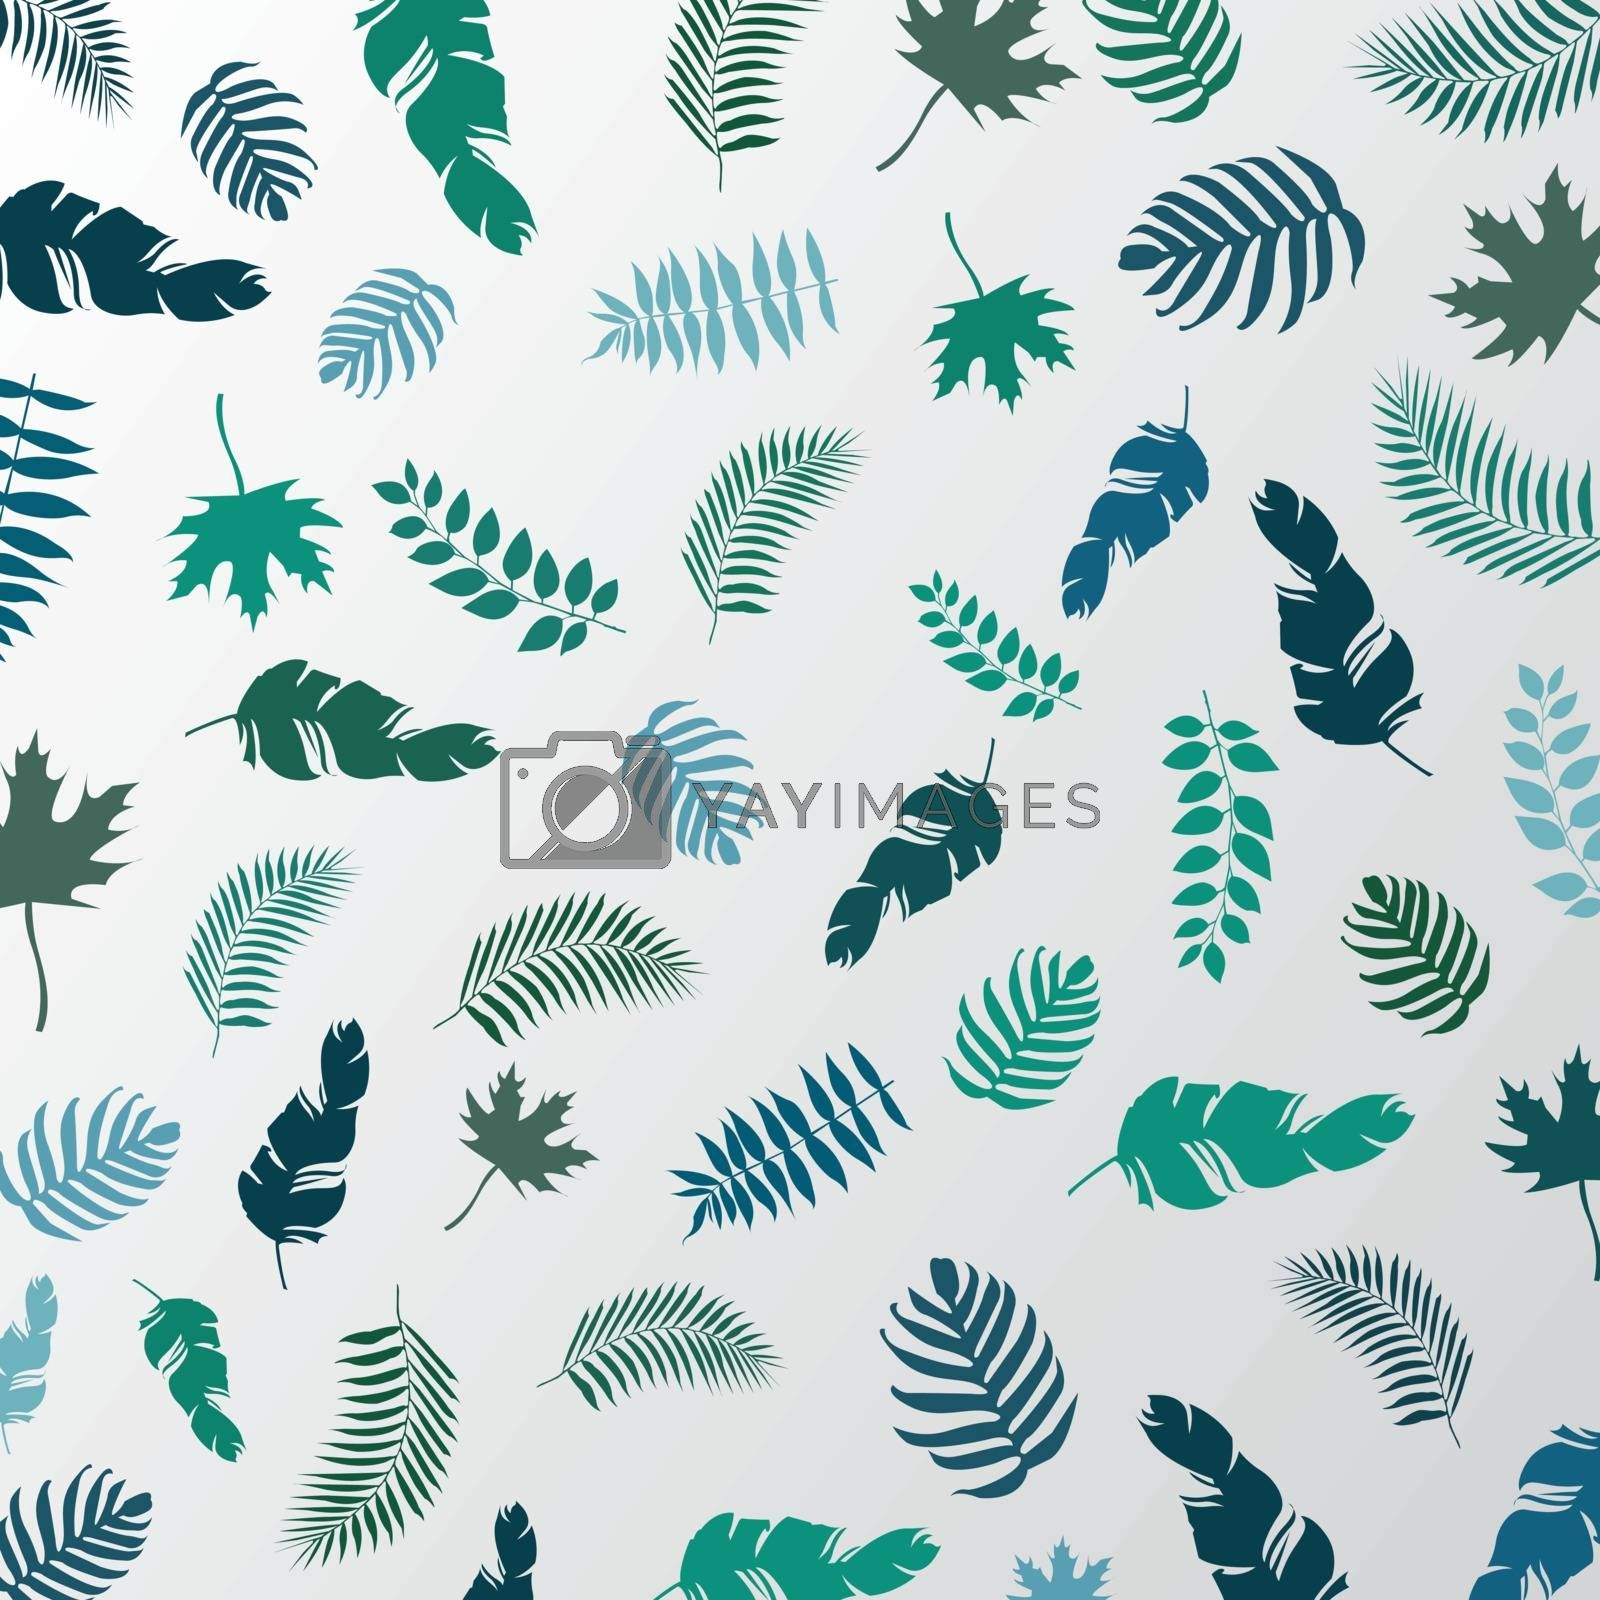 Summer tropical palm leaves green color pattern on a white background. Vector illustration